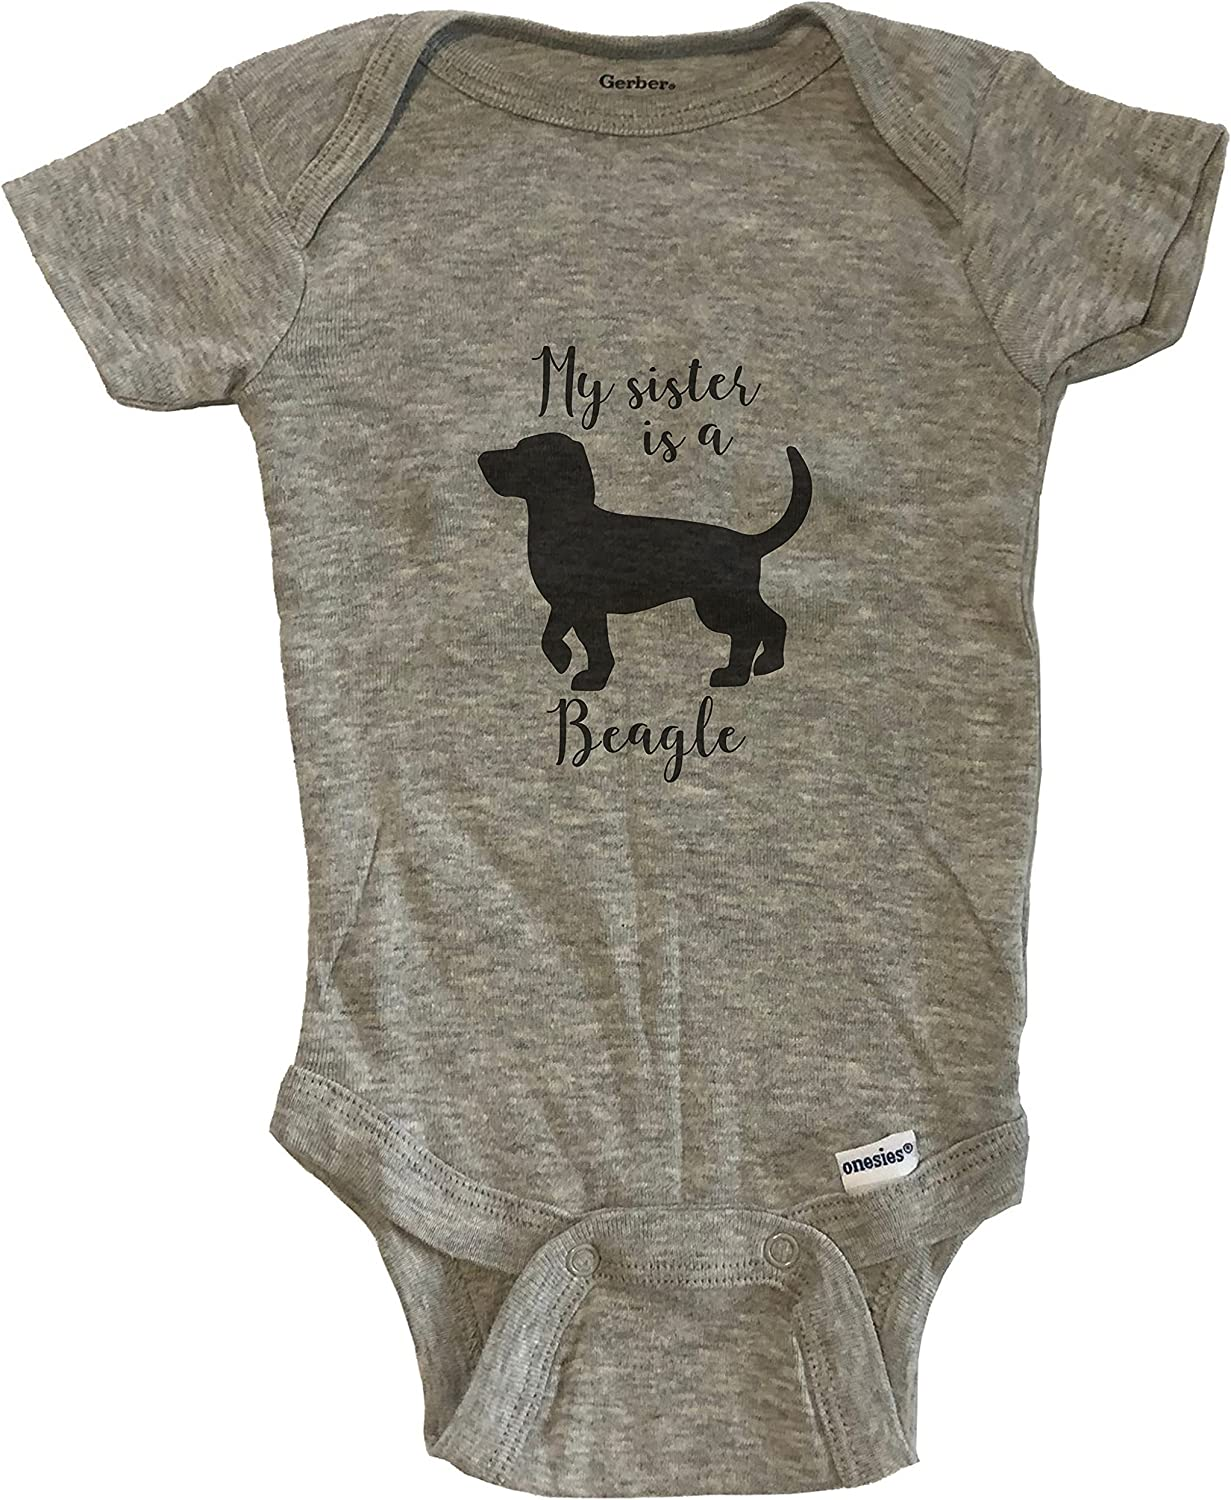 My Sister is Charlotte Mall A Beagle Cute Dog Baby One - Onesie Ba Max 78% OFF Piece